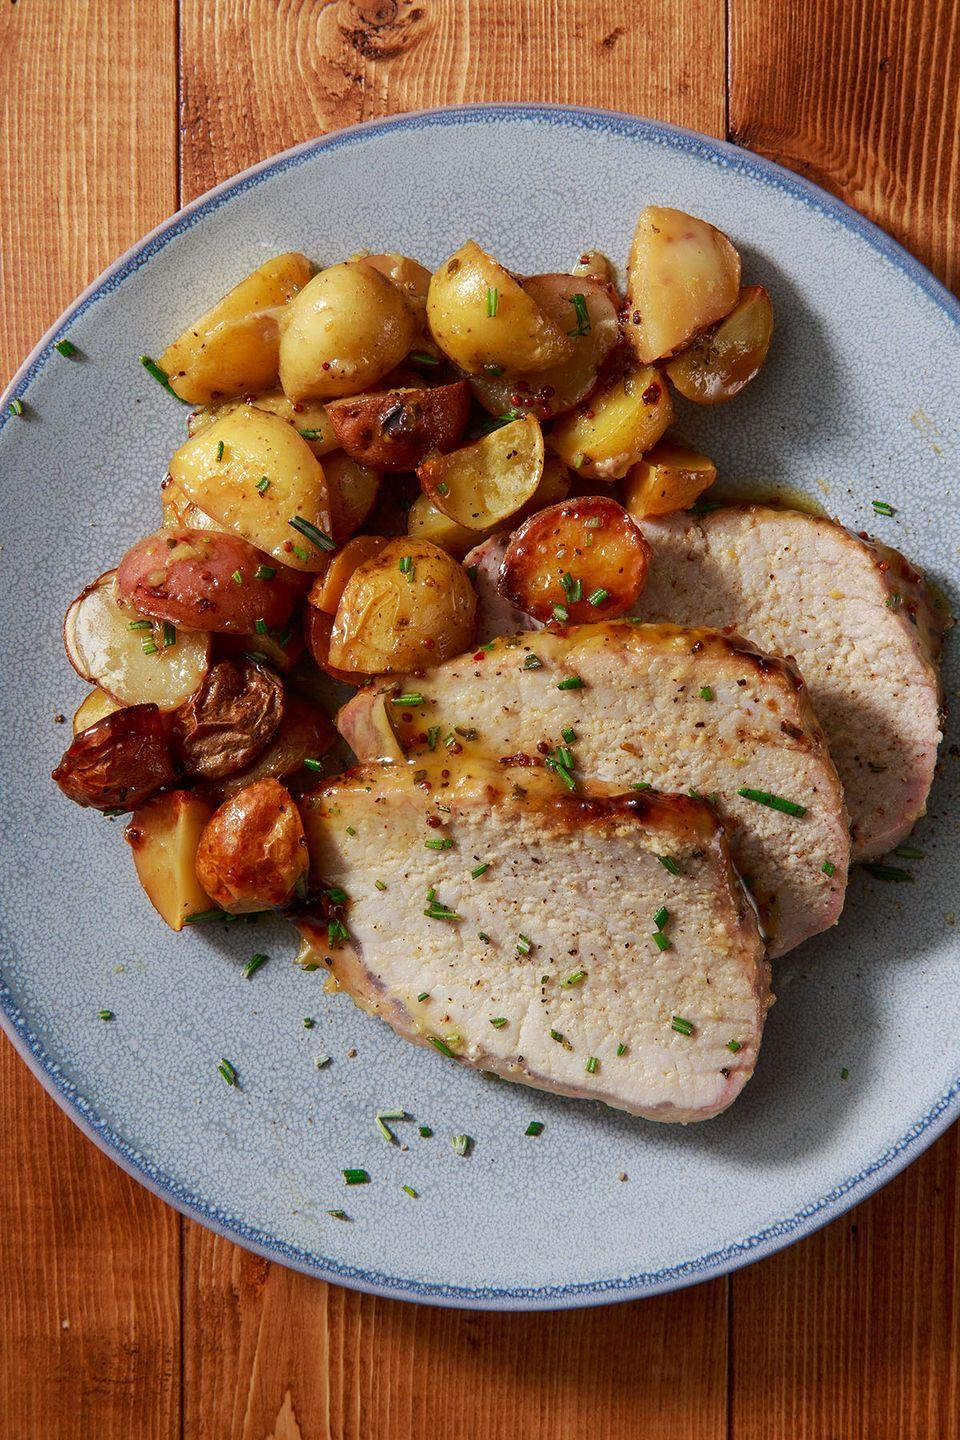 """<p>Pairs perfectly with the roasted potatoes. </p><p>Get the recipe from <a href=""""https://www.delish.com/cooking/recipe-ideas/recipes/a8597/roast-pork-tenderloin-recipe/"""" rel=""""nofollow noopener"""" target=""""_blank"""" data-ylk=""""slk:Delish"""" class=""""link rapid-noclick-resp"""">Delish</a>. </p>"""